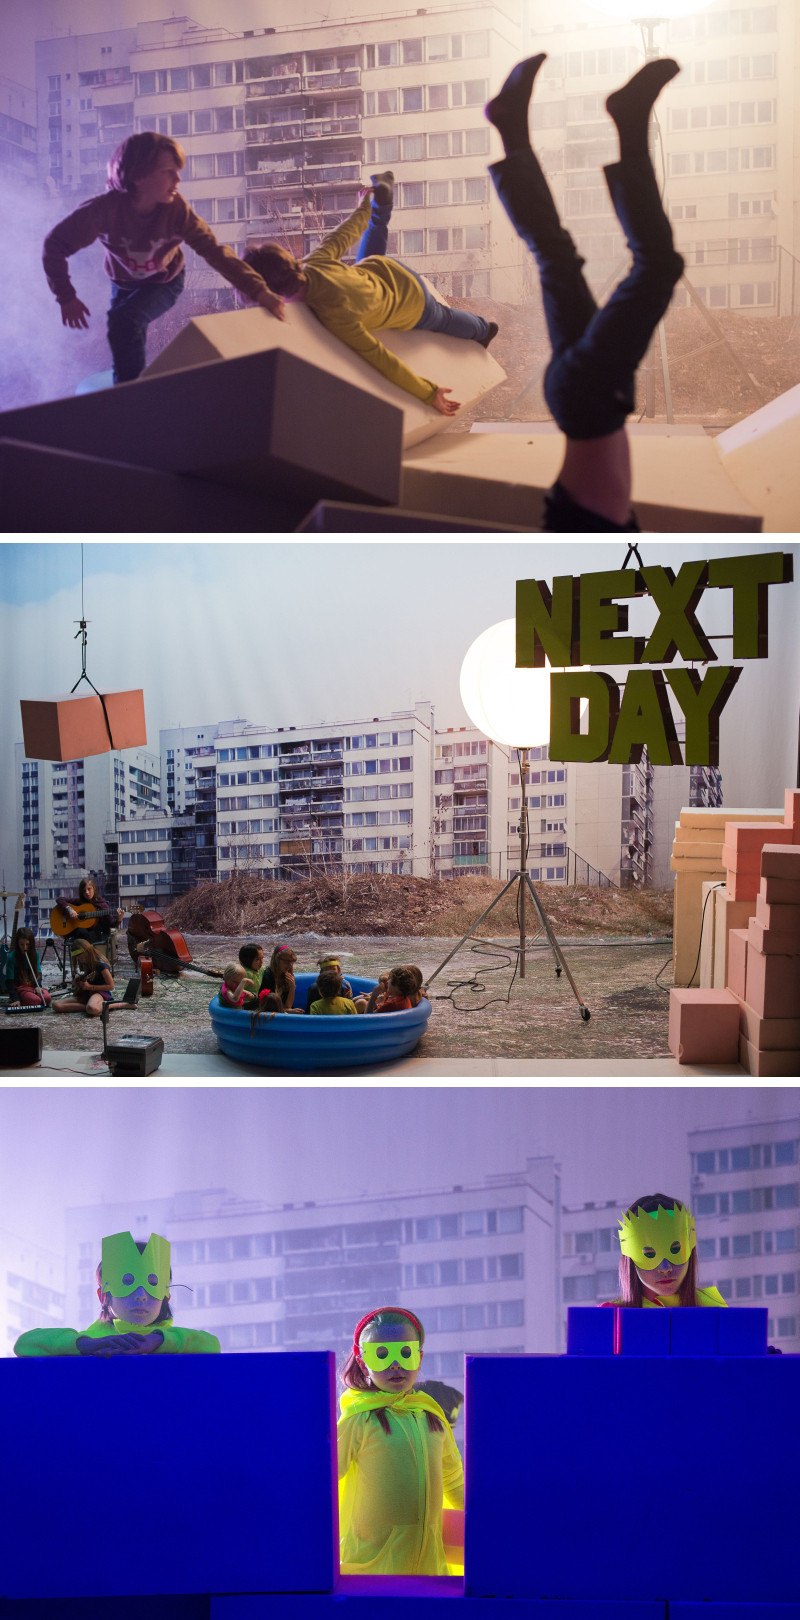 Philippe Quesne/Campo (FR/BE): Next Day